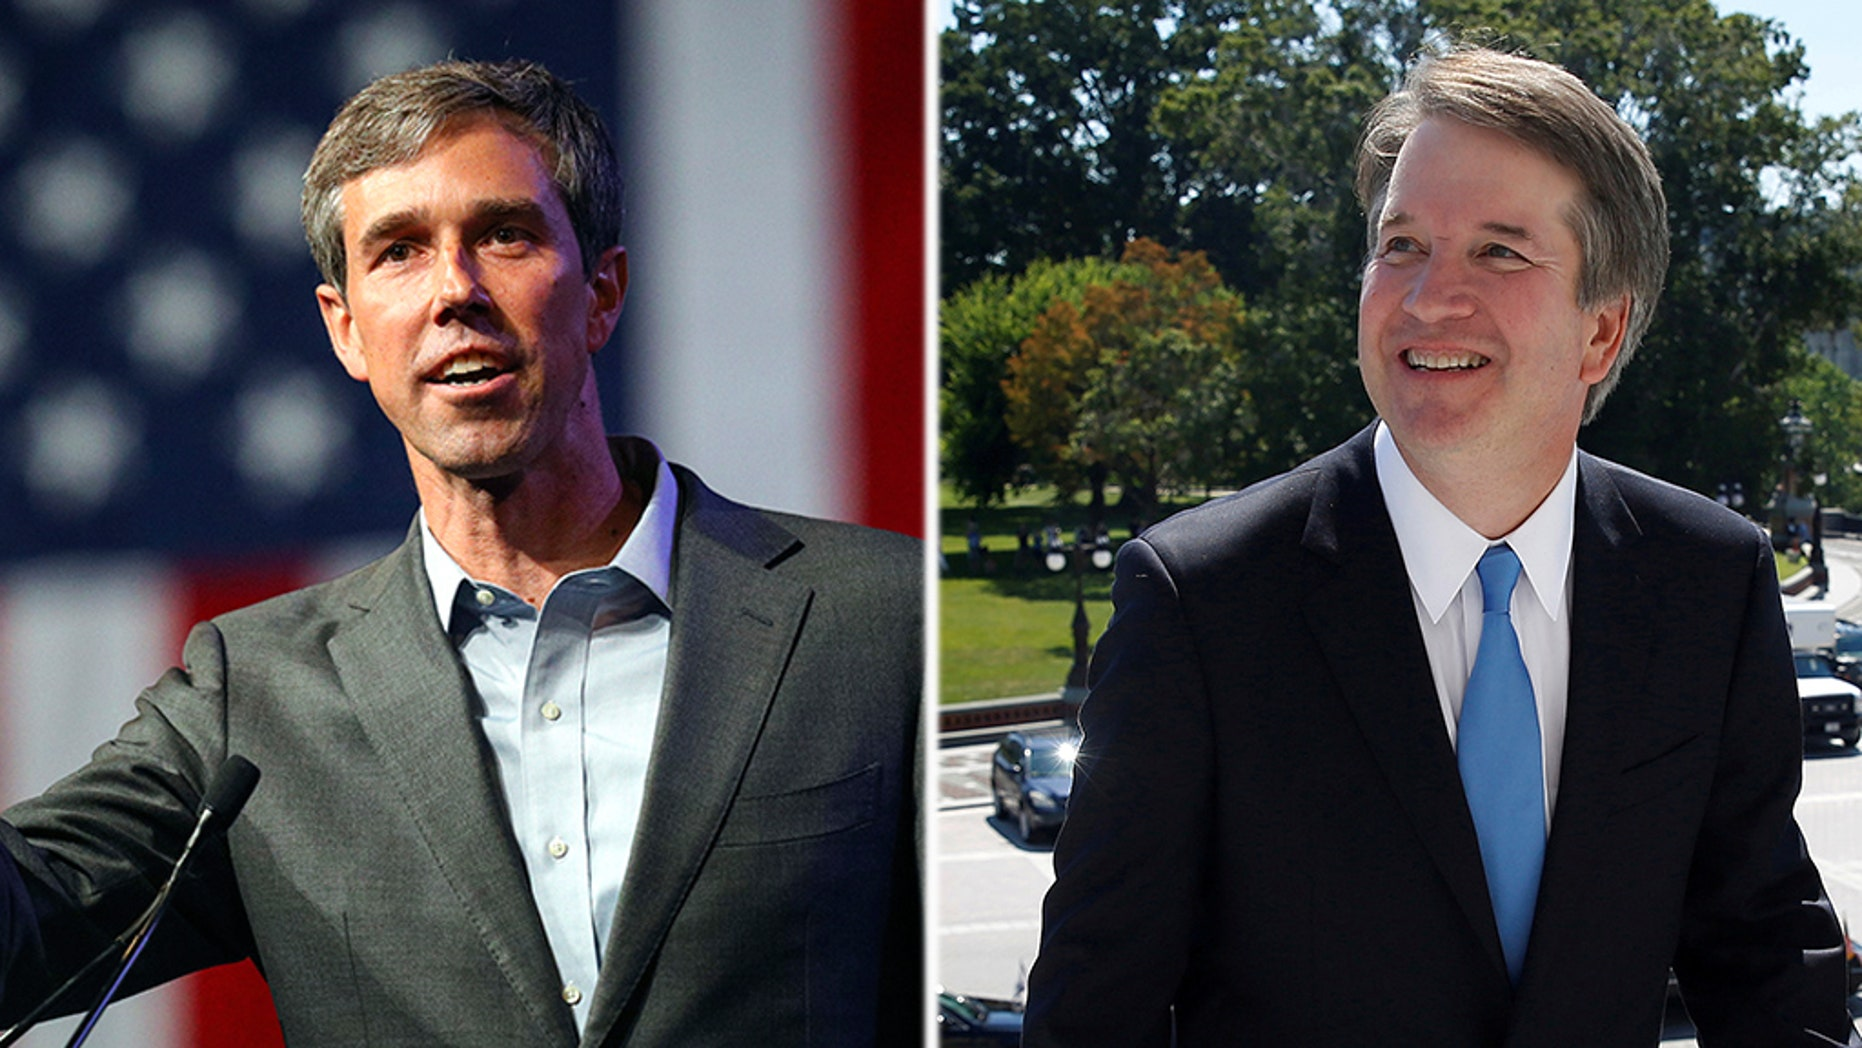 Beto O'Roarke, the Democrat candidate for Senate in Texas (l); and embattled Supreme Court nominee Brett Kavanaugh (r).